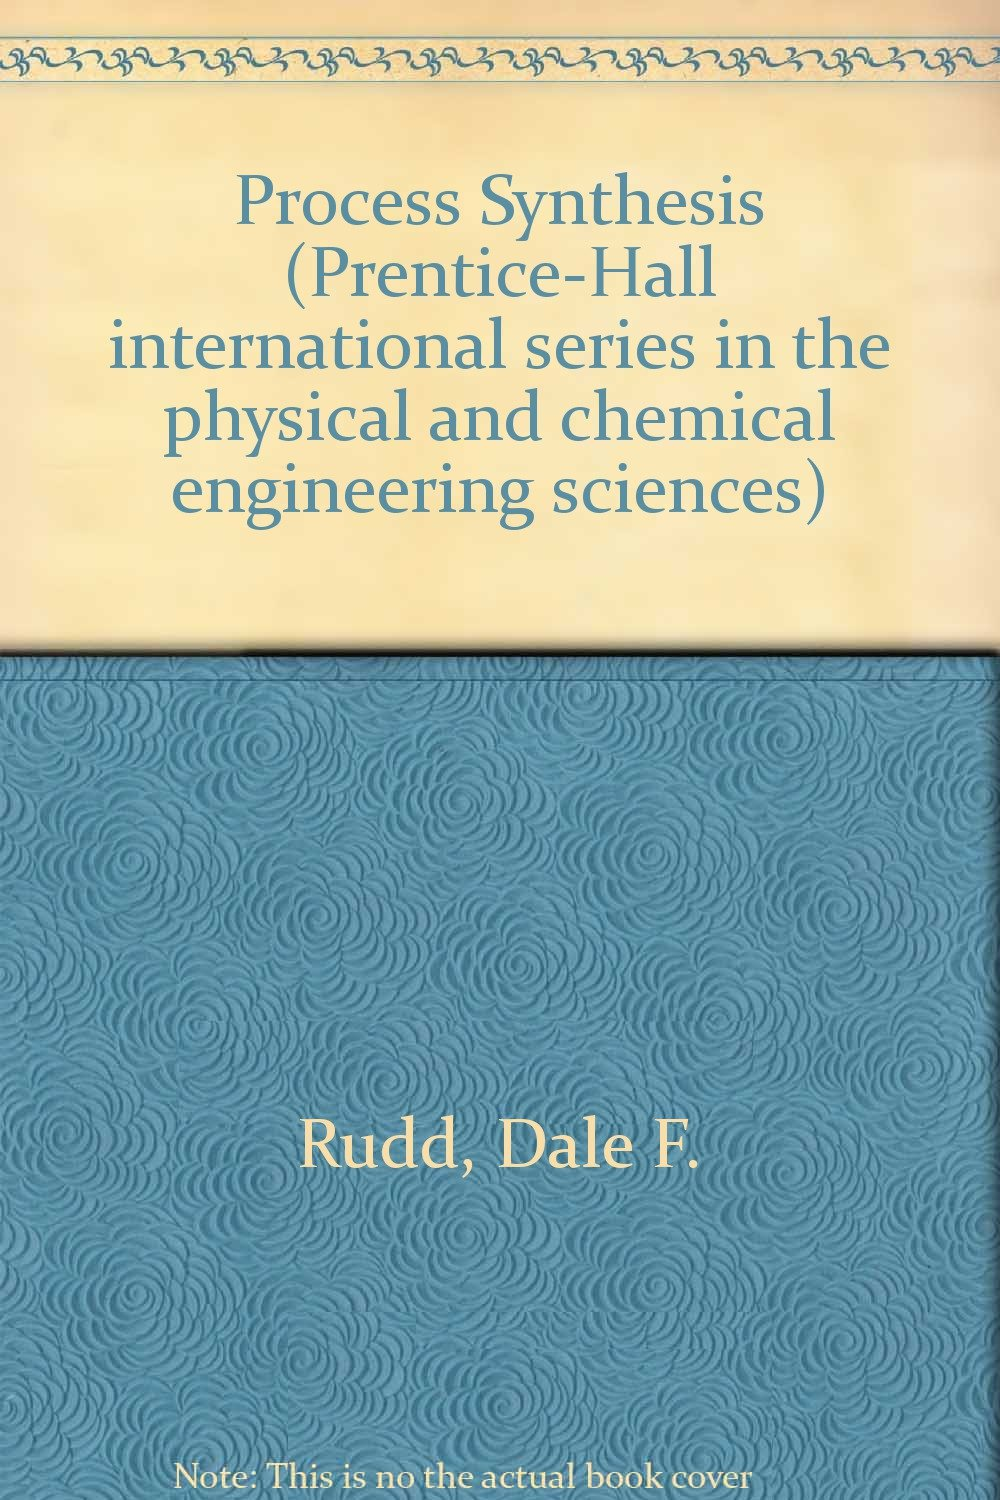 Process synthesis prentice hall international series in the physical and chemical engineering sciences dale f rudd gary j powers jeffrey j siirola